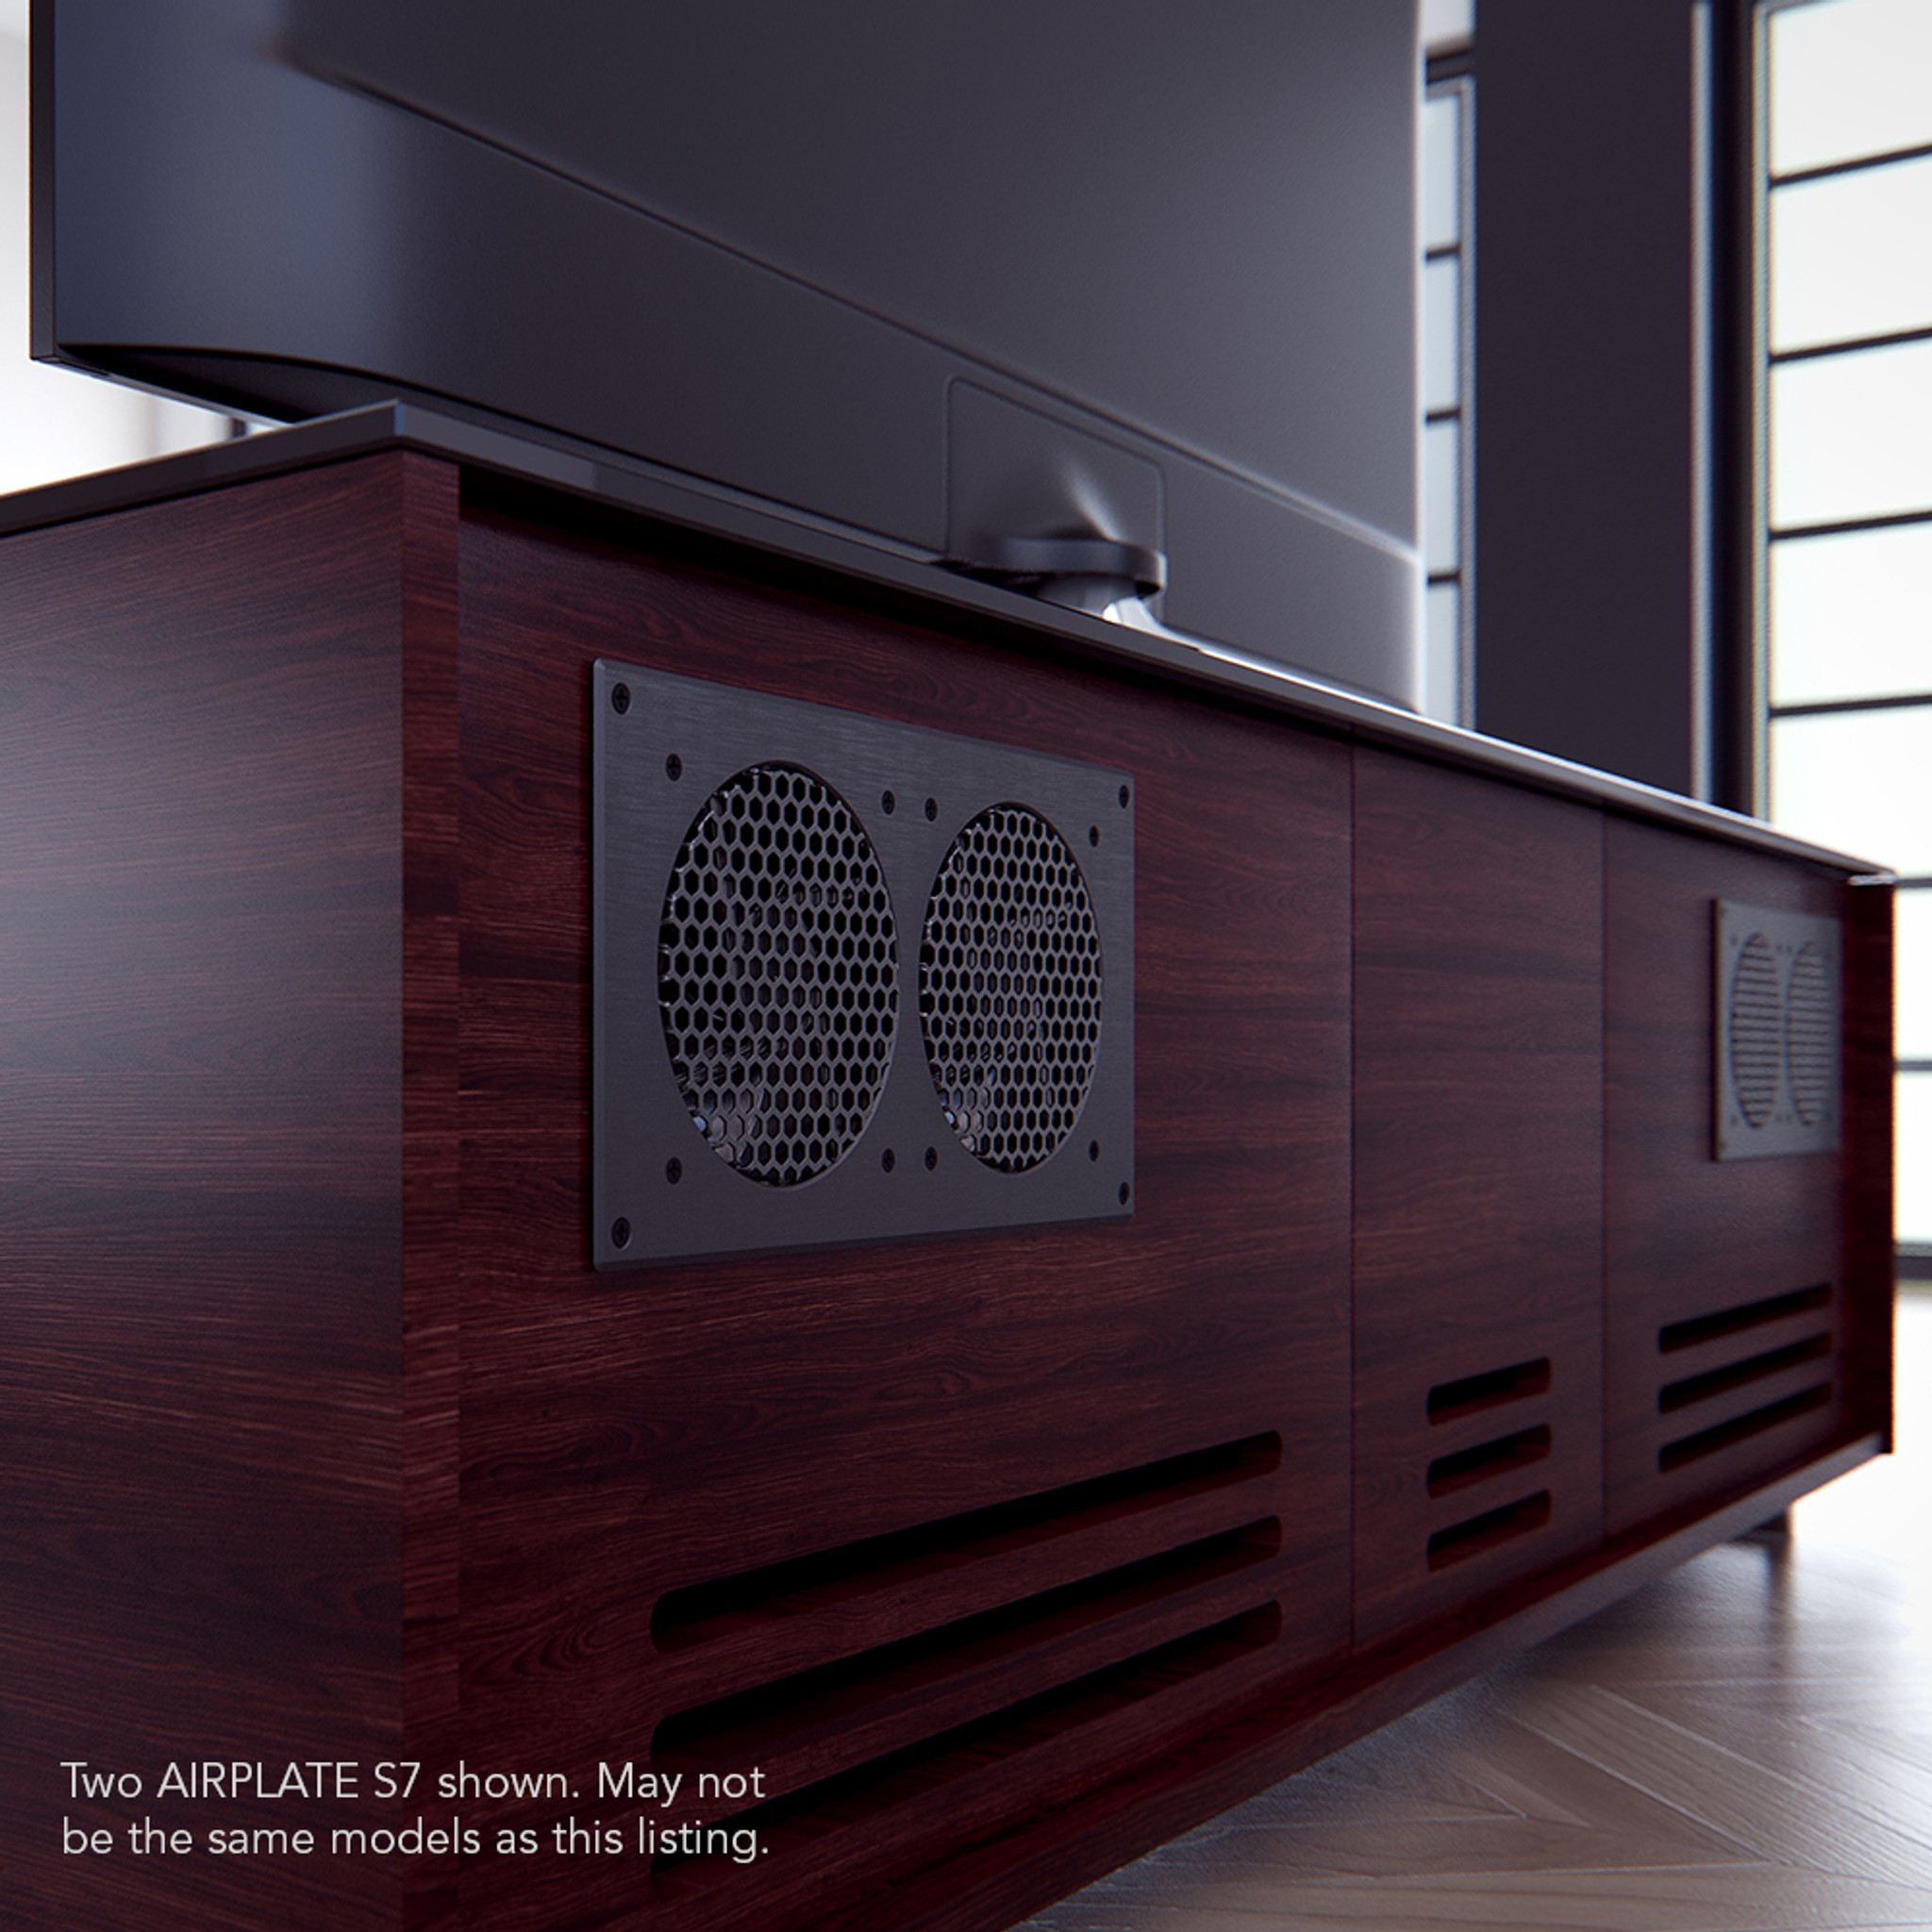 AIRPLATE S7 Home Theater and AV Quiet Cabinet Cooling Fan